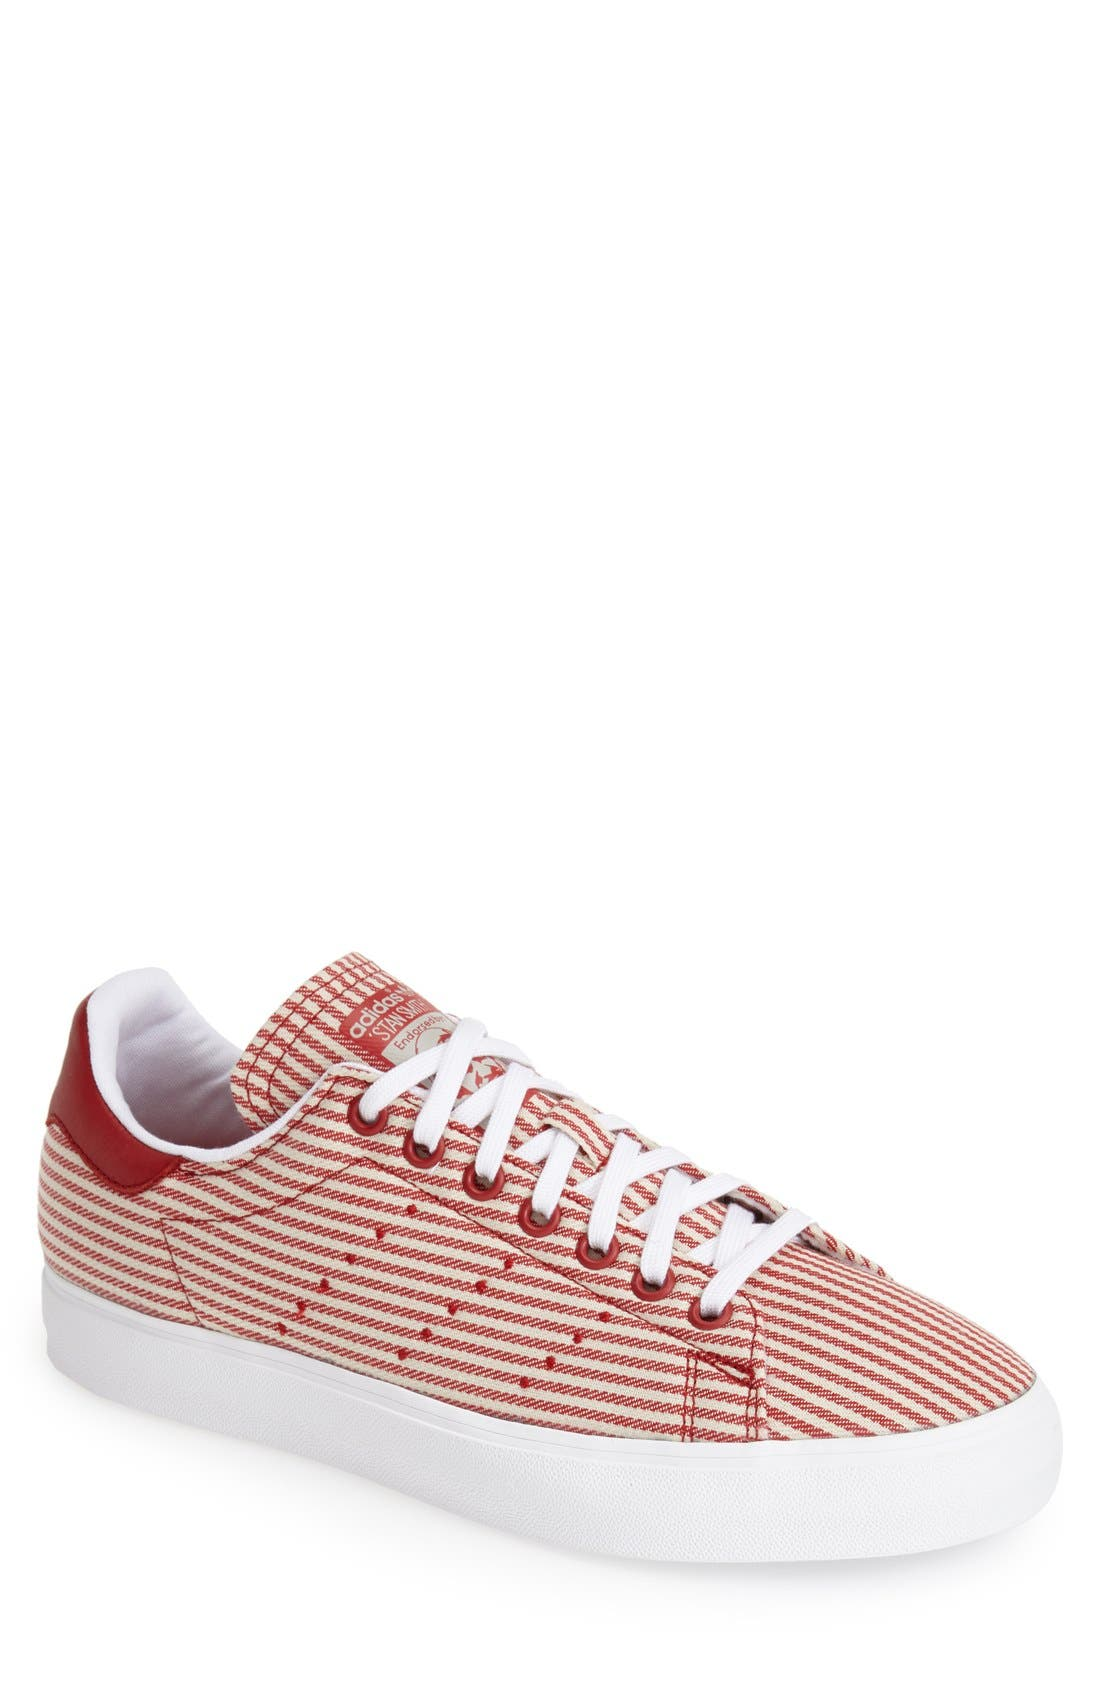 d582c3f738d Buy stan smith adidas mens nordstrom - 54% OFF